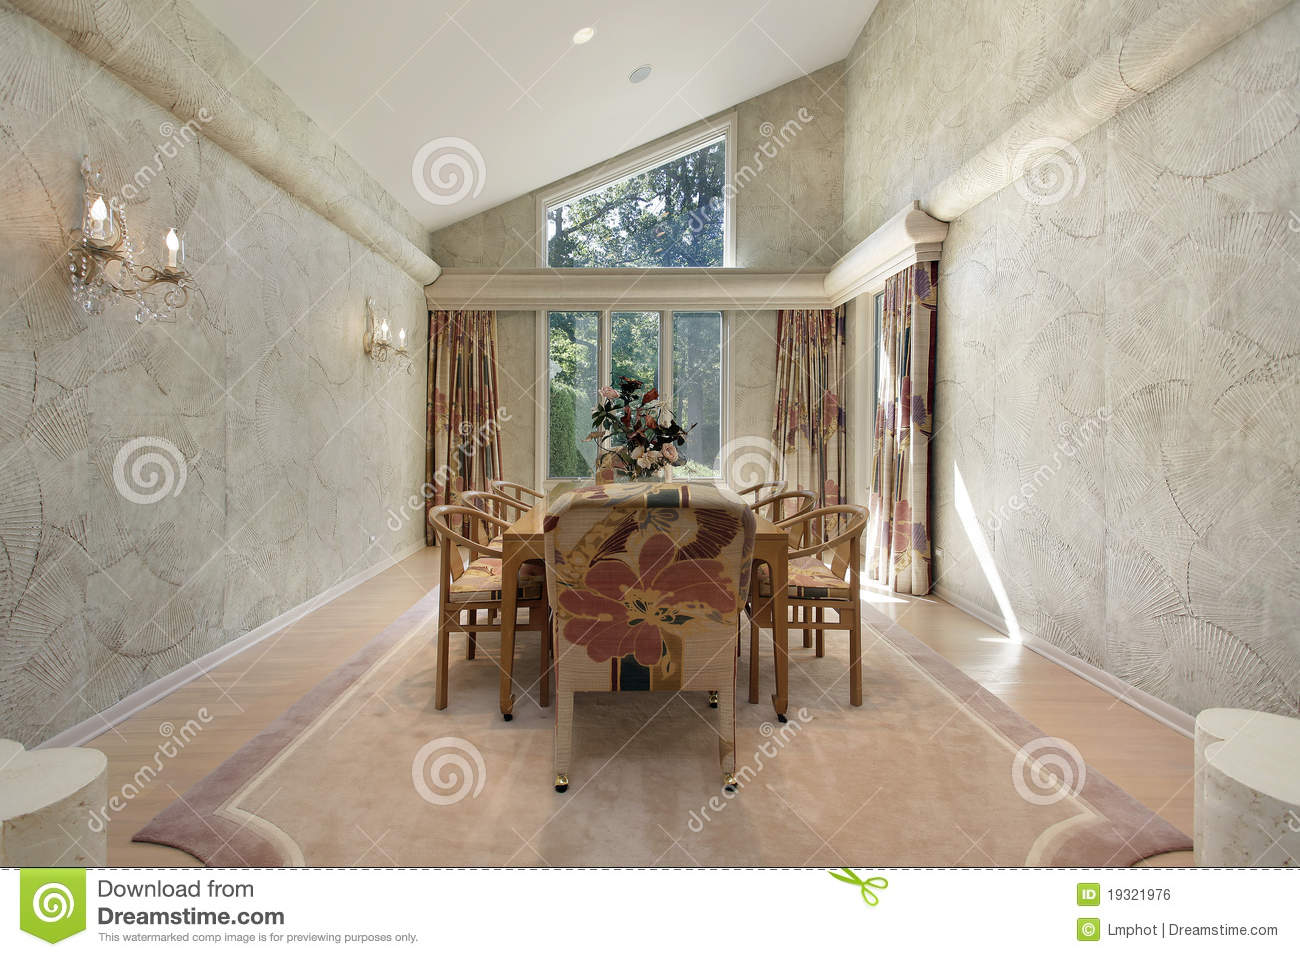 Dining Room With Wall Trim Royalty Free Stock Image